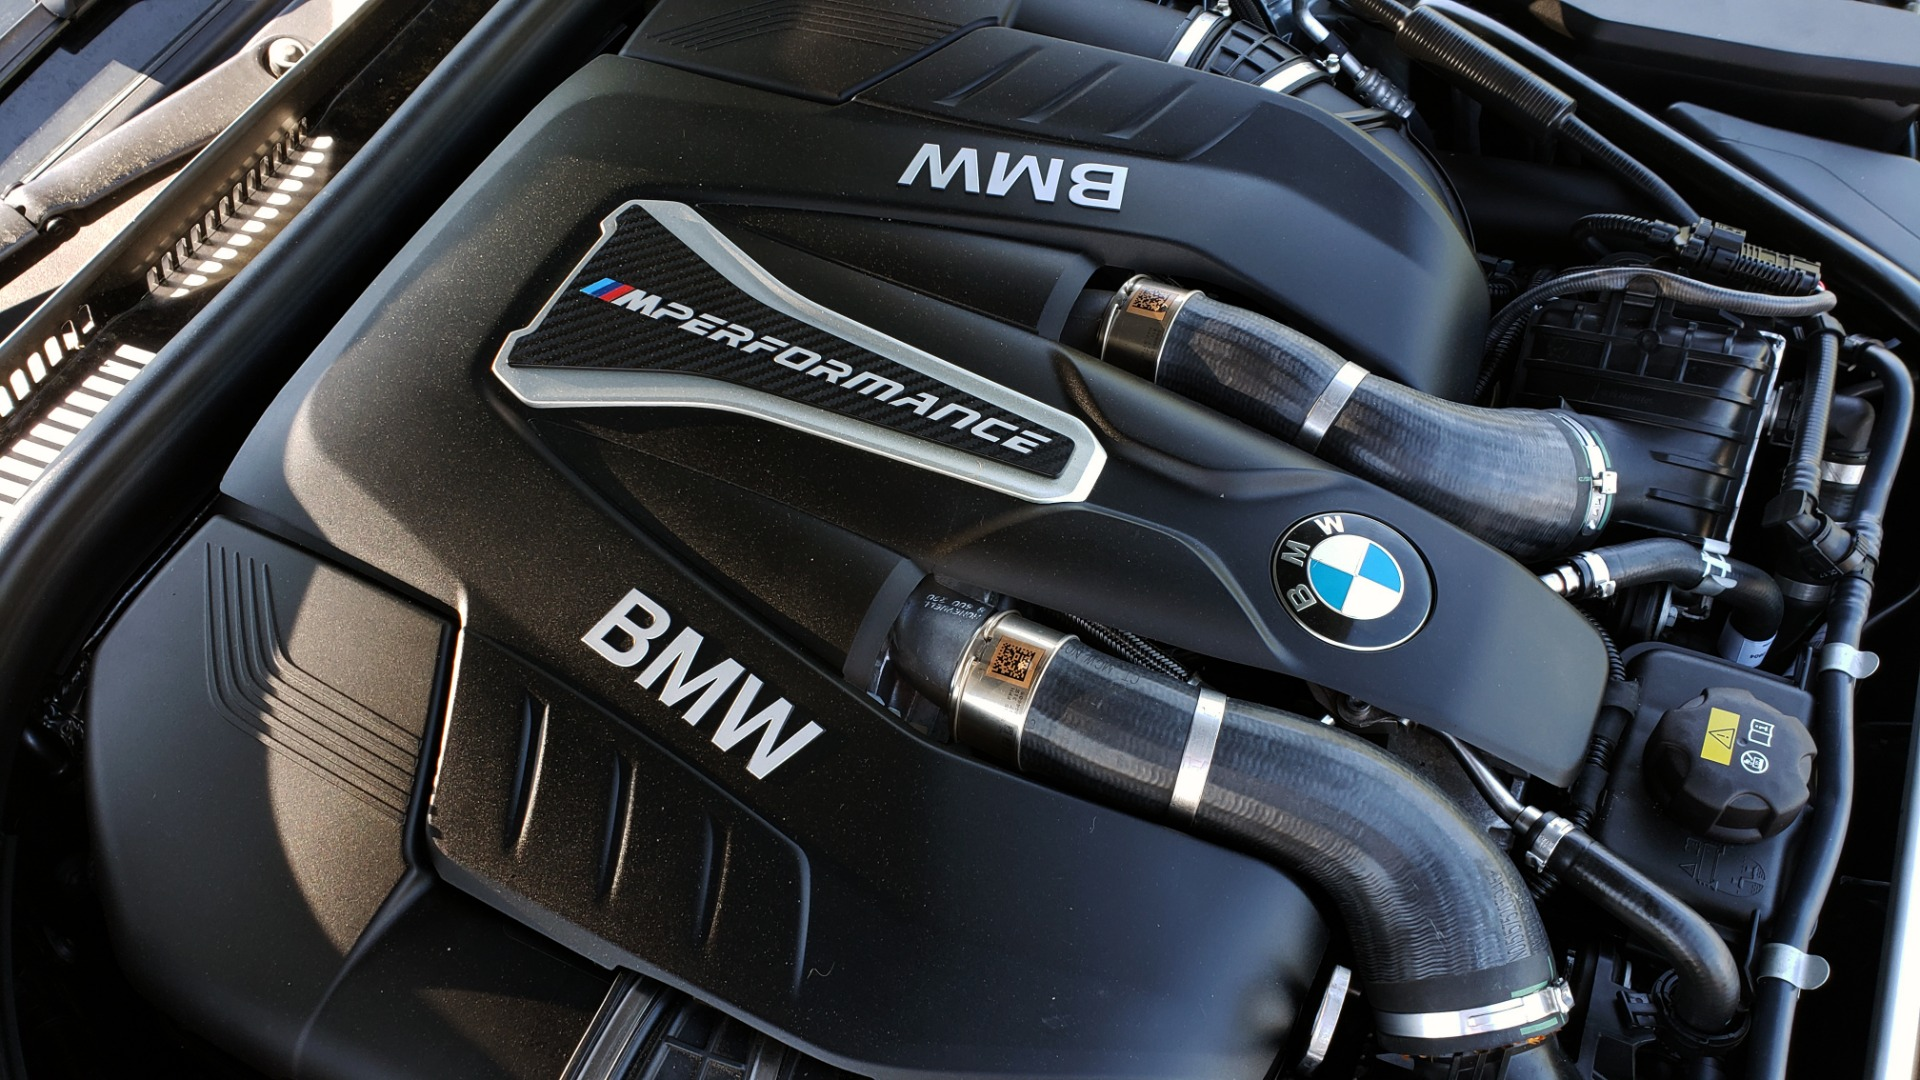 Used 2018 BMW 5 SERIES M550I XDRIVE / EXEC PKG / LUX / DRVR ASST / CLD WTHR / ACTIVE DR for sale Sold at Formula Imports in Charlotte NC 28227 13